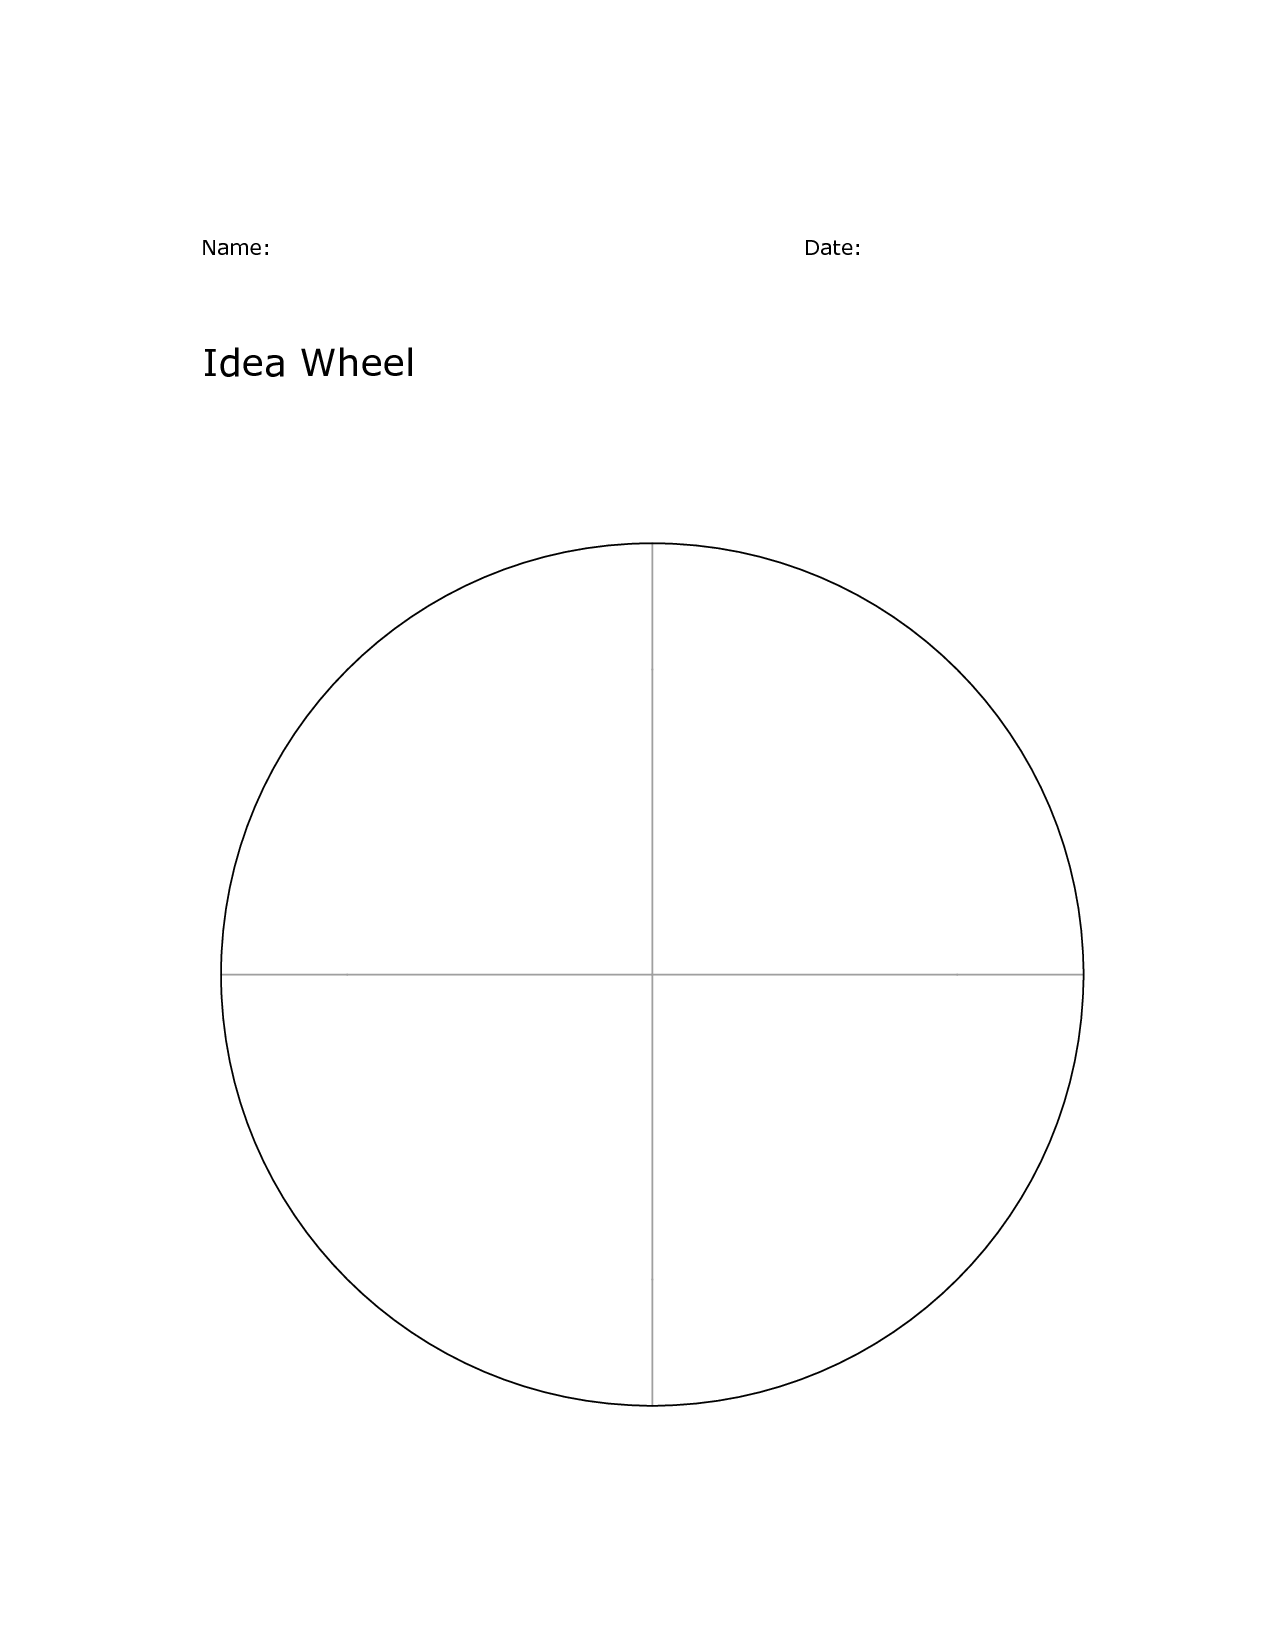 Wellness Wheel Worksheet Printable Template | Healthy | Pinterest